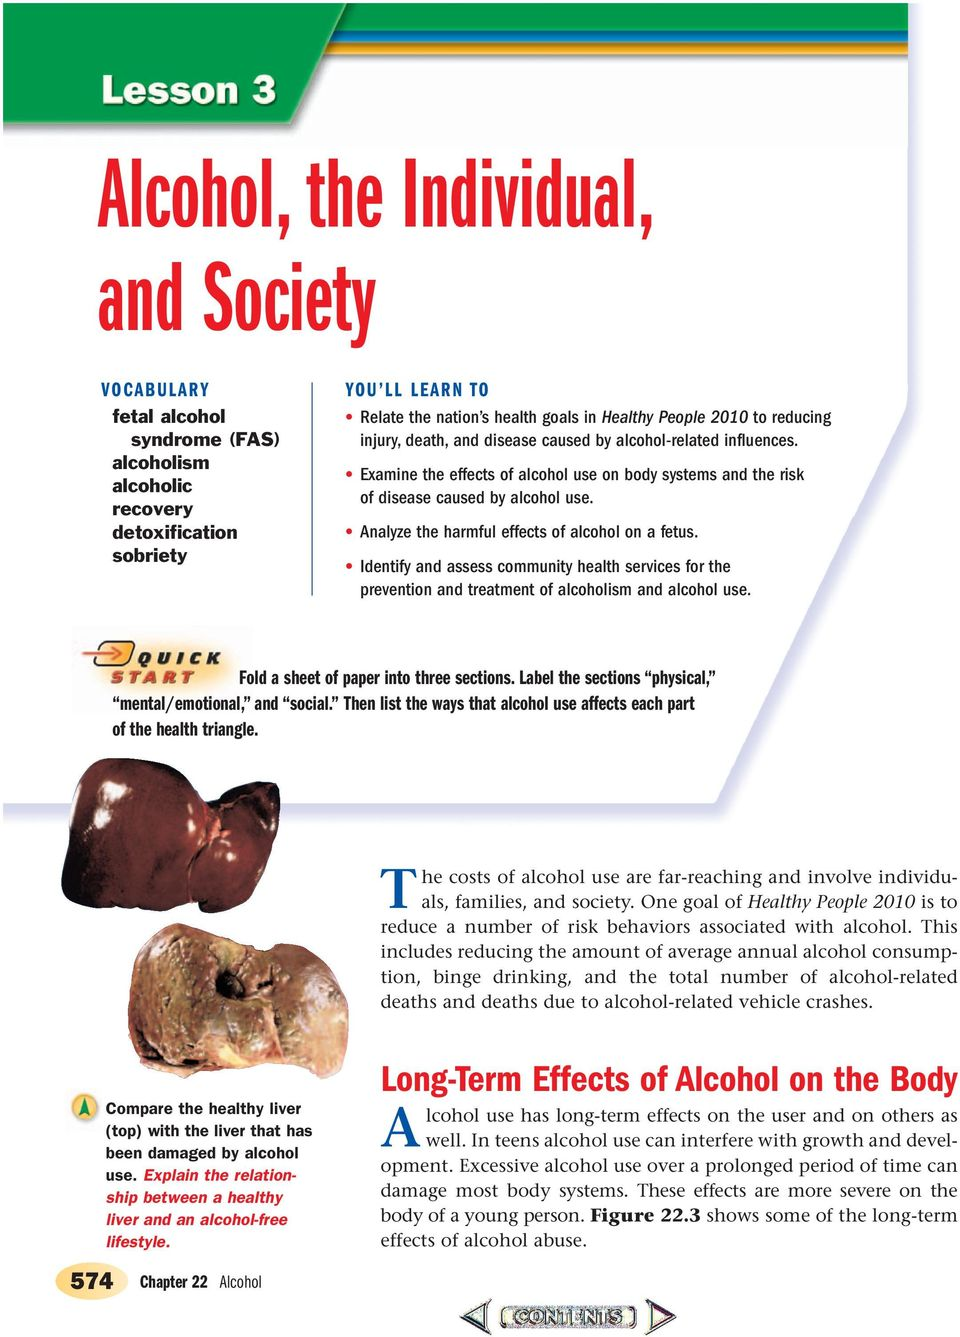 the use of alcohol in society essay Essay, term paper research paper on alcohol the interdiction of alcohol use caused criminal in the early 1920 s society viewed alcohol as more of a social.